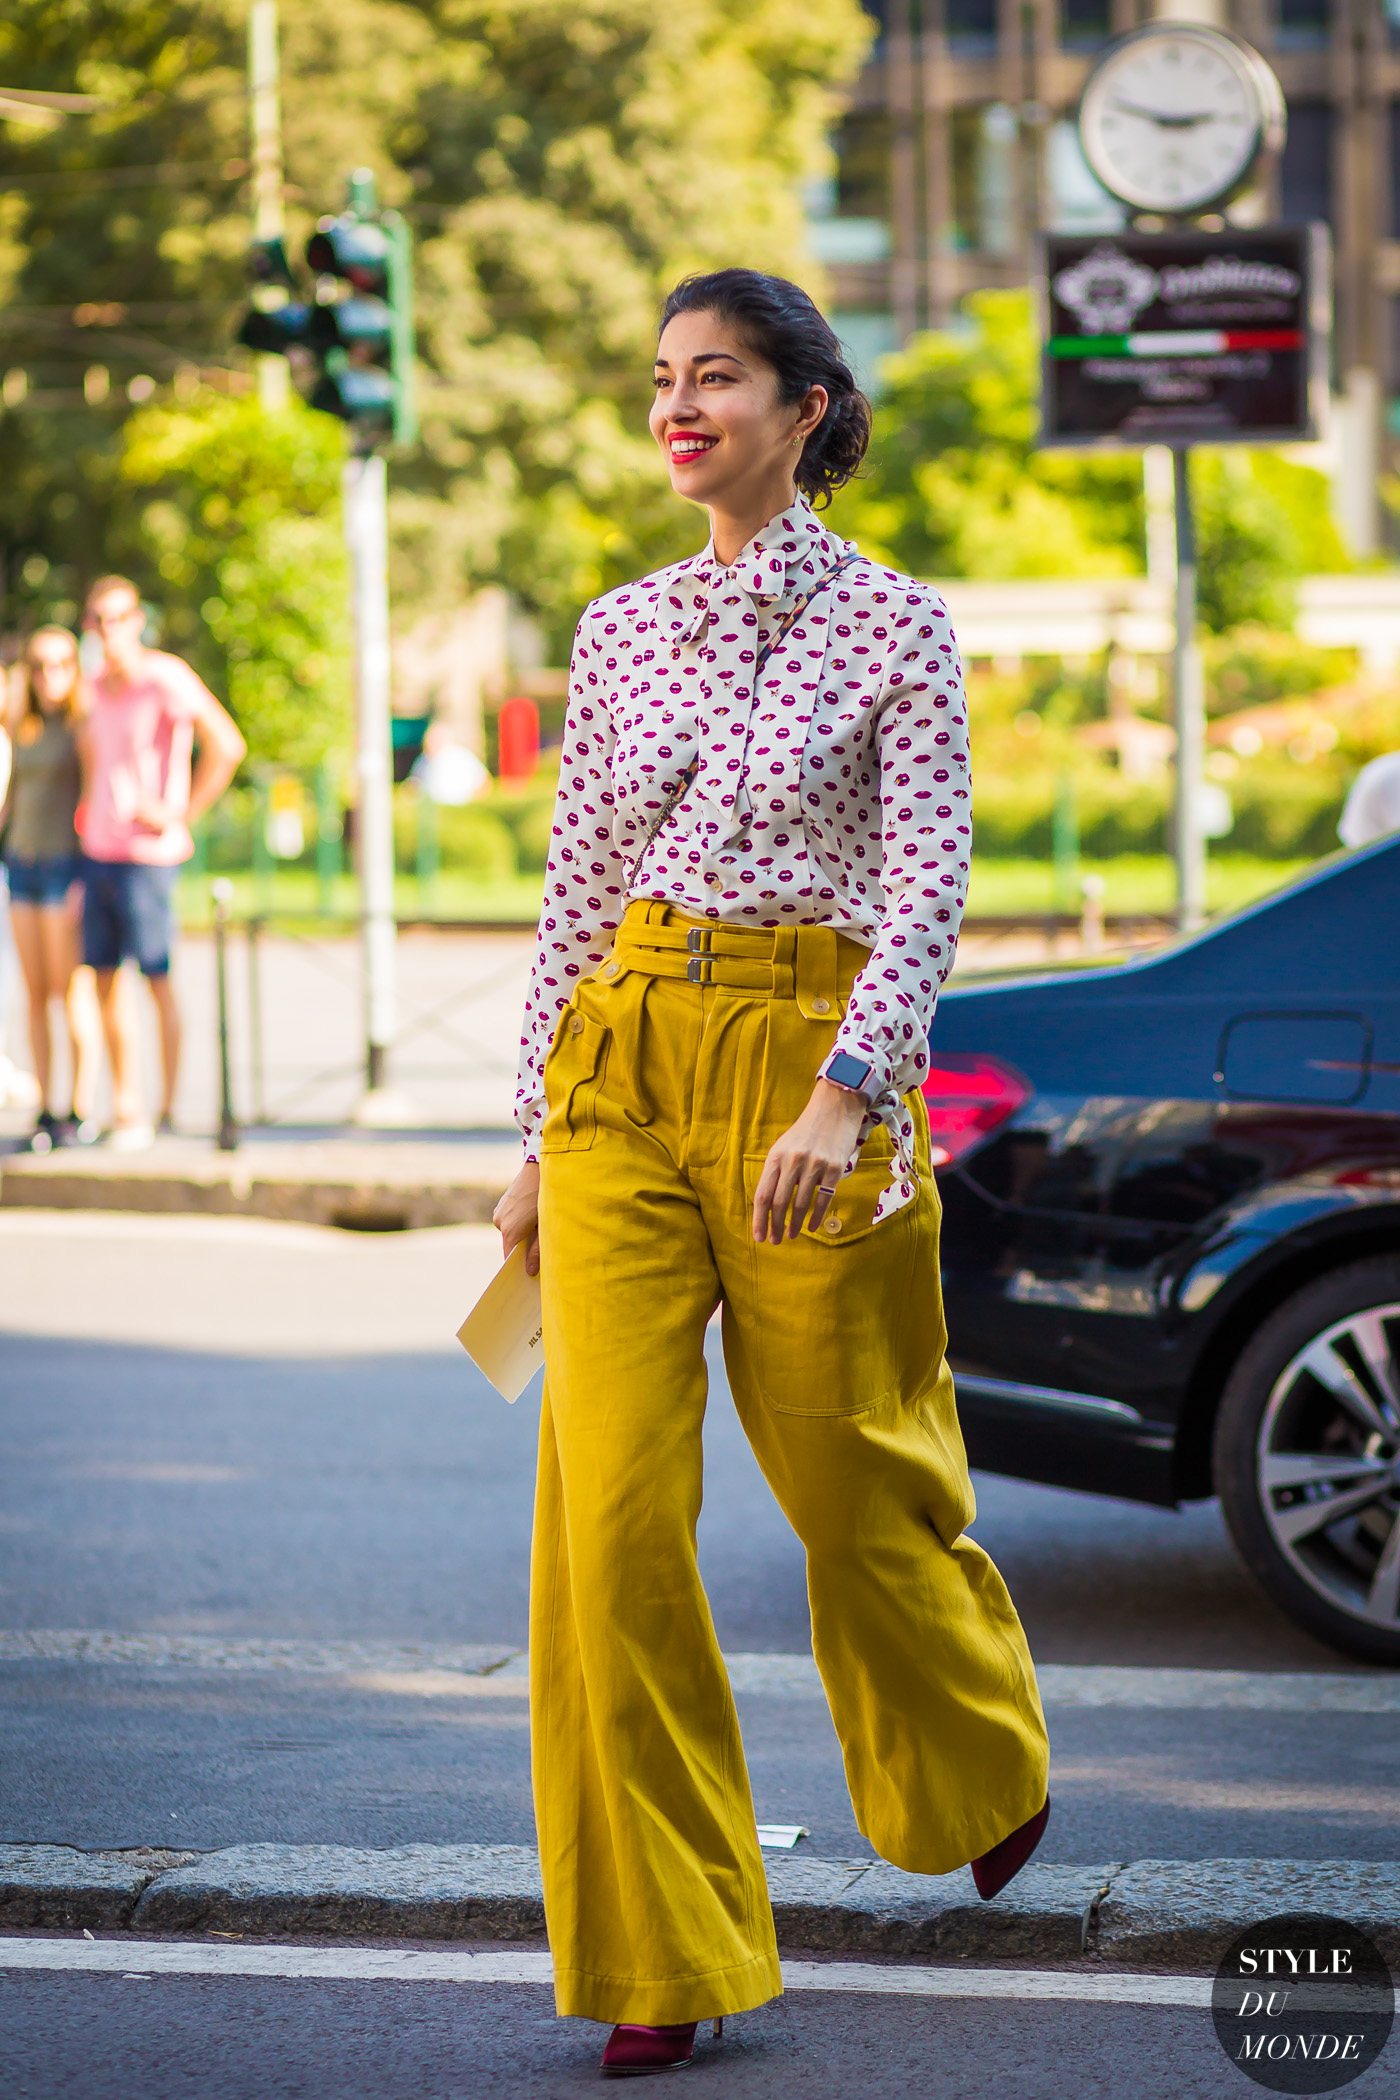 Caroline Issa by STYLEDUMONDE Street Style Fashion Photography0E2A9826